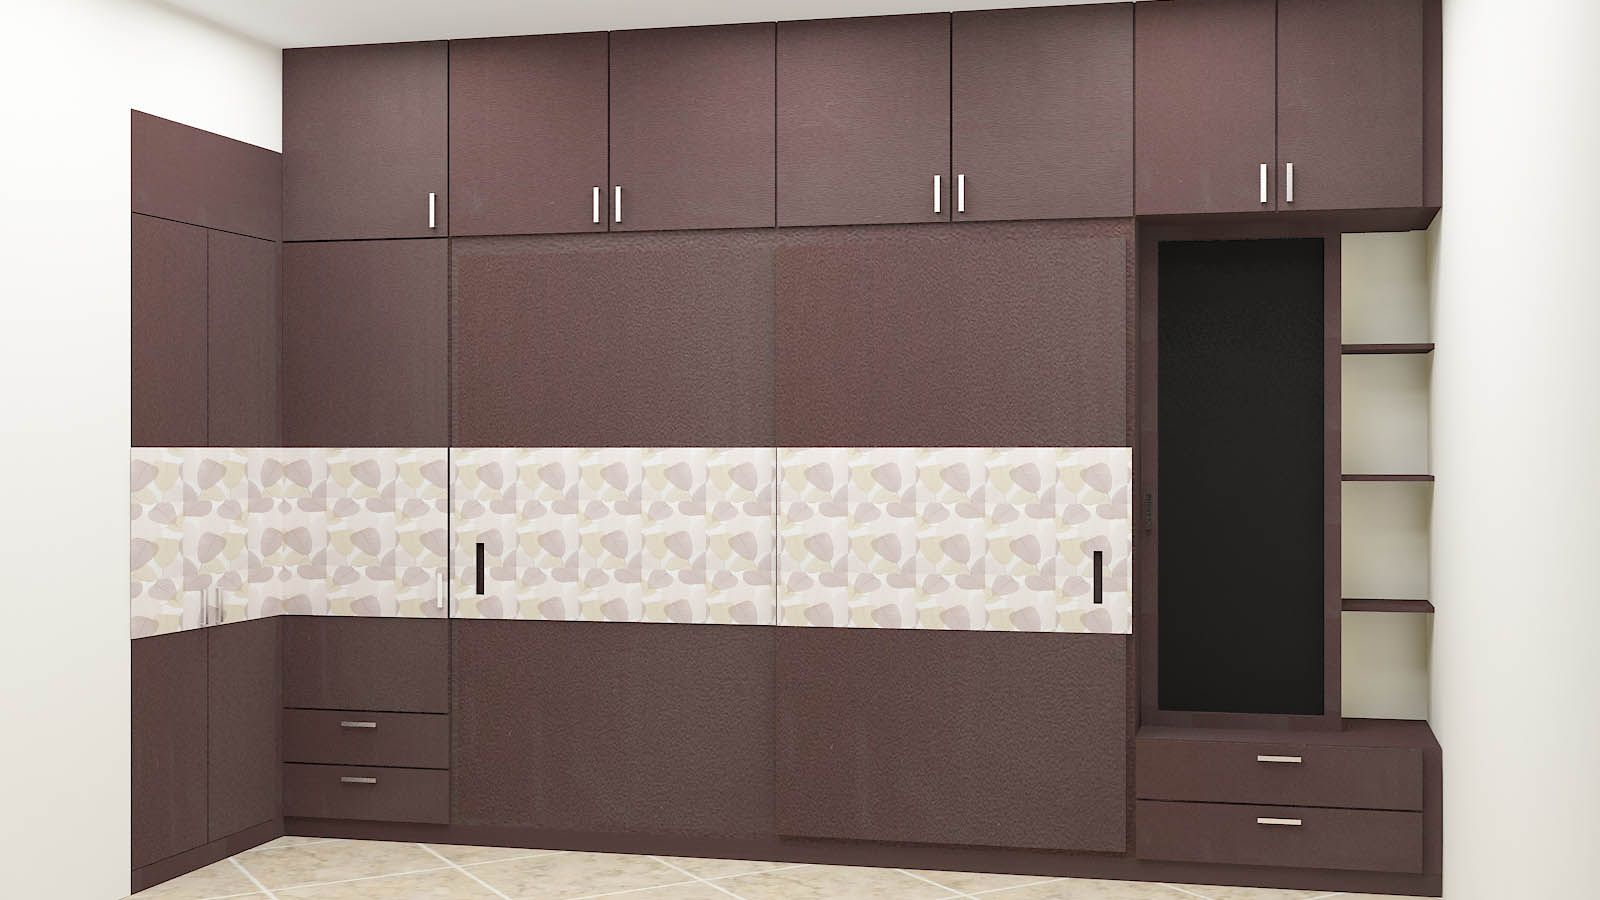 Cupboard Designs For Bedrooms Indian Homes modern wardrobe designs for bedroom for indian homes at low prices